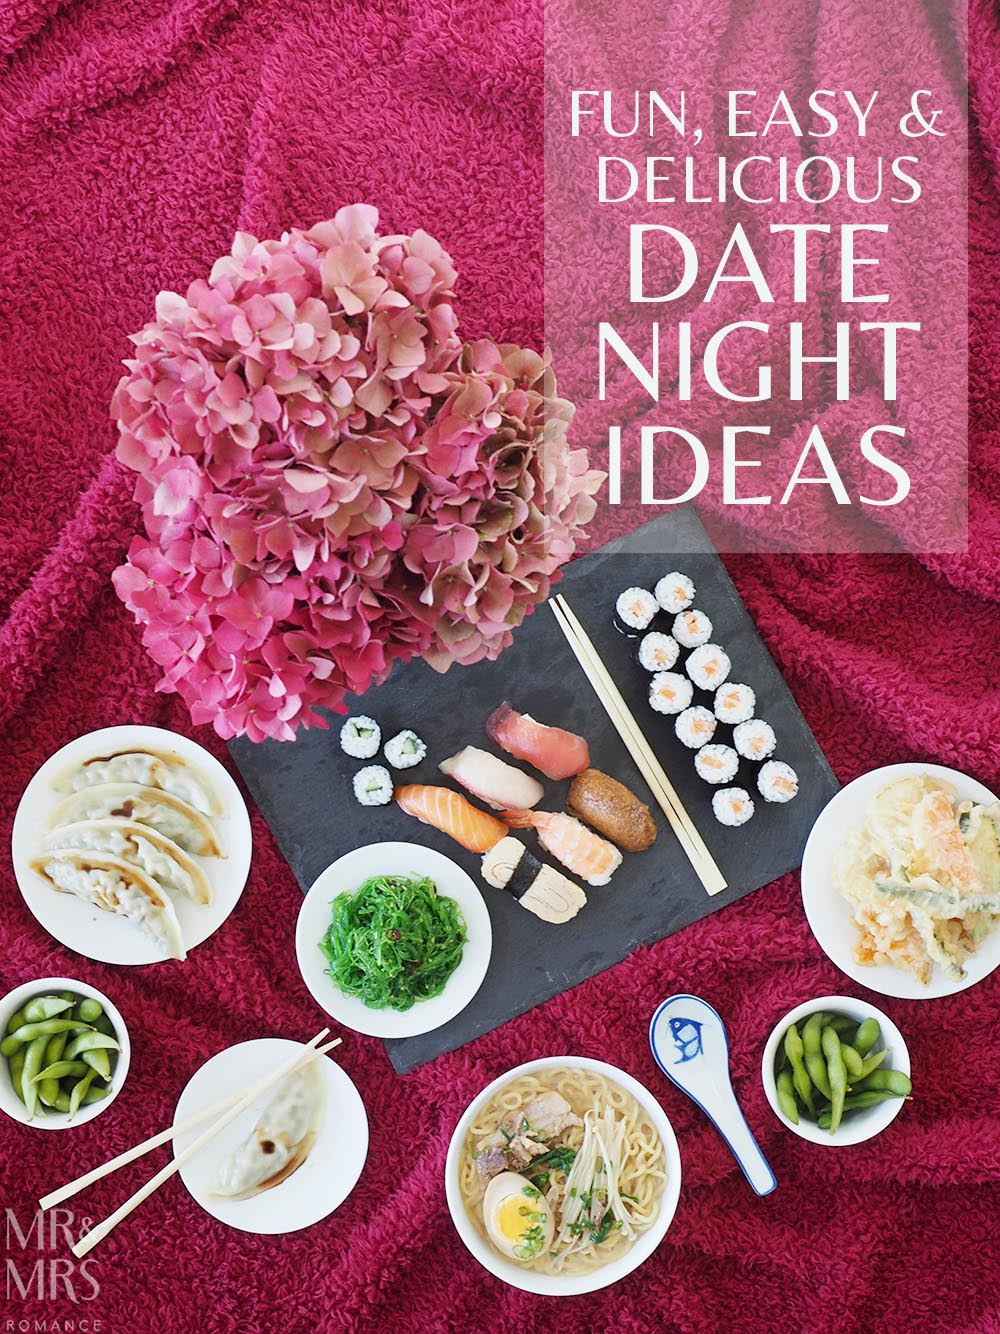 Uber Eats date night - Mr and Mrs Romance title